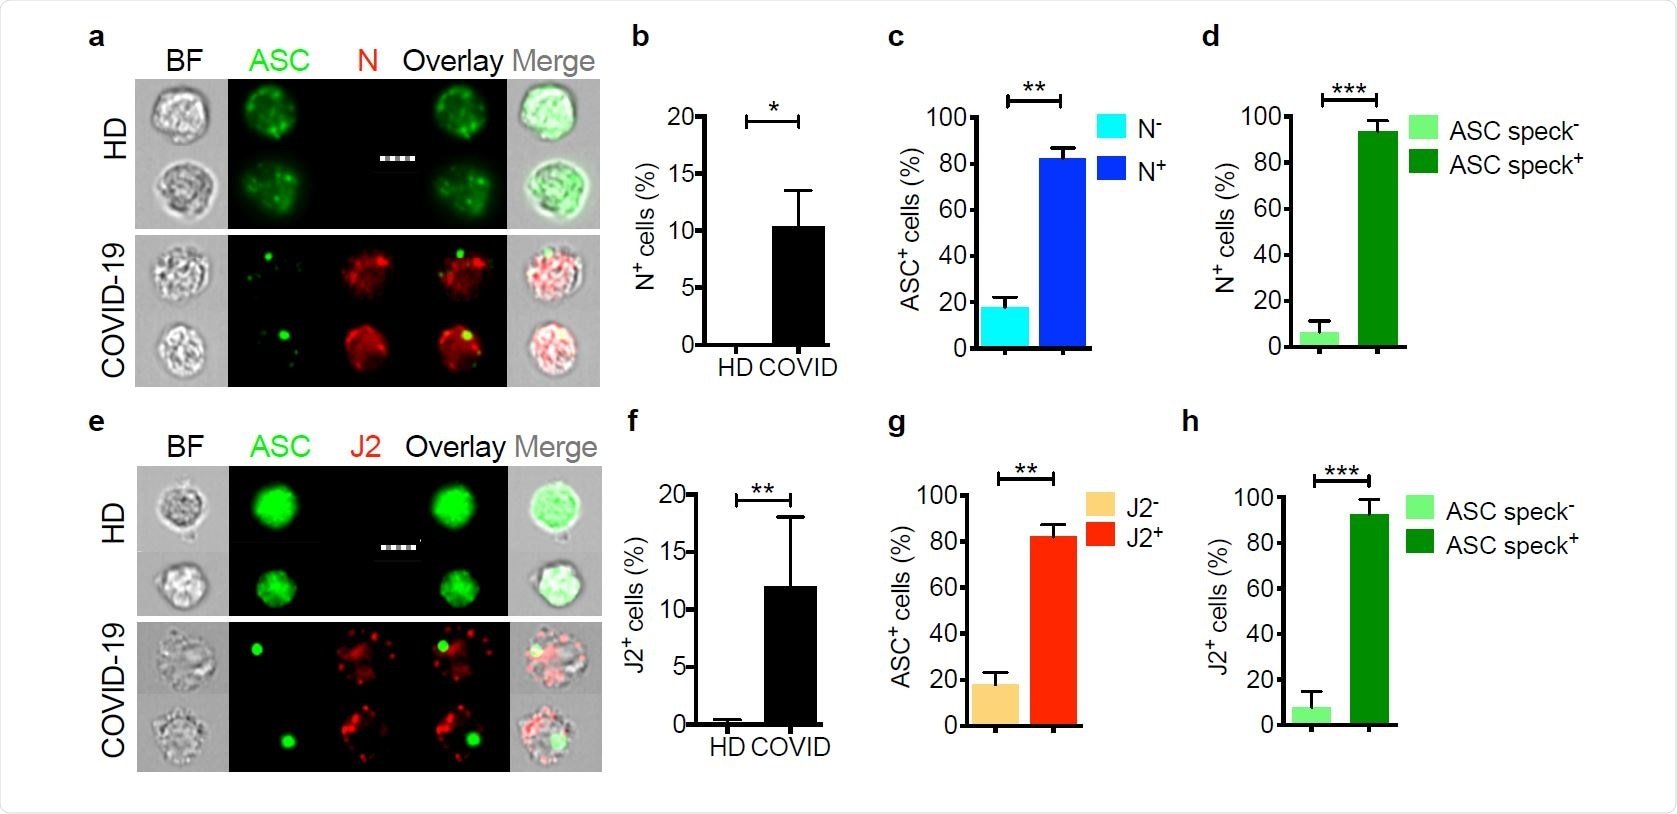 Circulating monocytes are infected with SARS-CoV-2 Circulating monocytes from HD and COVID-19 patients were purified and stained for SARS-CoV-2 nucleocapsid (N) (n=5) (a-d) or dsRNA (J2 antibody) (n=4) (e-h) and ASC. Shown are representative imaging flow cytometry images (a,e), quantification of percentage of cells that were infected by N (b) or J2 (f) staining, percentage of uninfected or infected cells (by J2 or N staining) that showed ASC specks (c, g) or percentage of cells with or without ASC specks that showed N (d) or J2 (h) staining. Scale bar, 7 µm. BF, brightfield. Mean ± S.E.M. is shown. *p<0.05, **p<0.01, ***p<0.001 by nonparametric unpaired t test (Mann-Whitney or Kolmogorov-Smirnov).